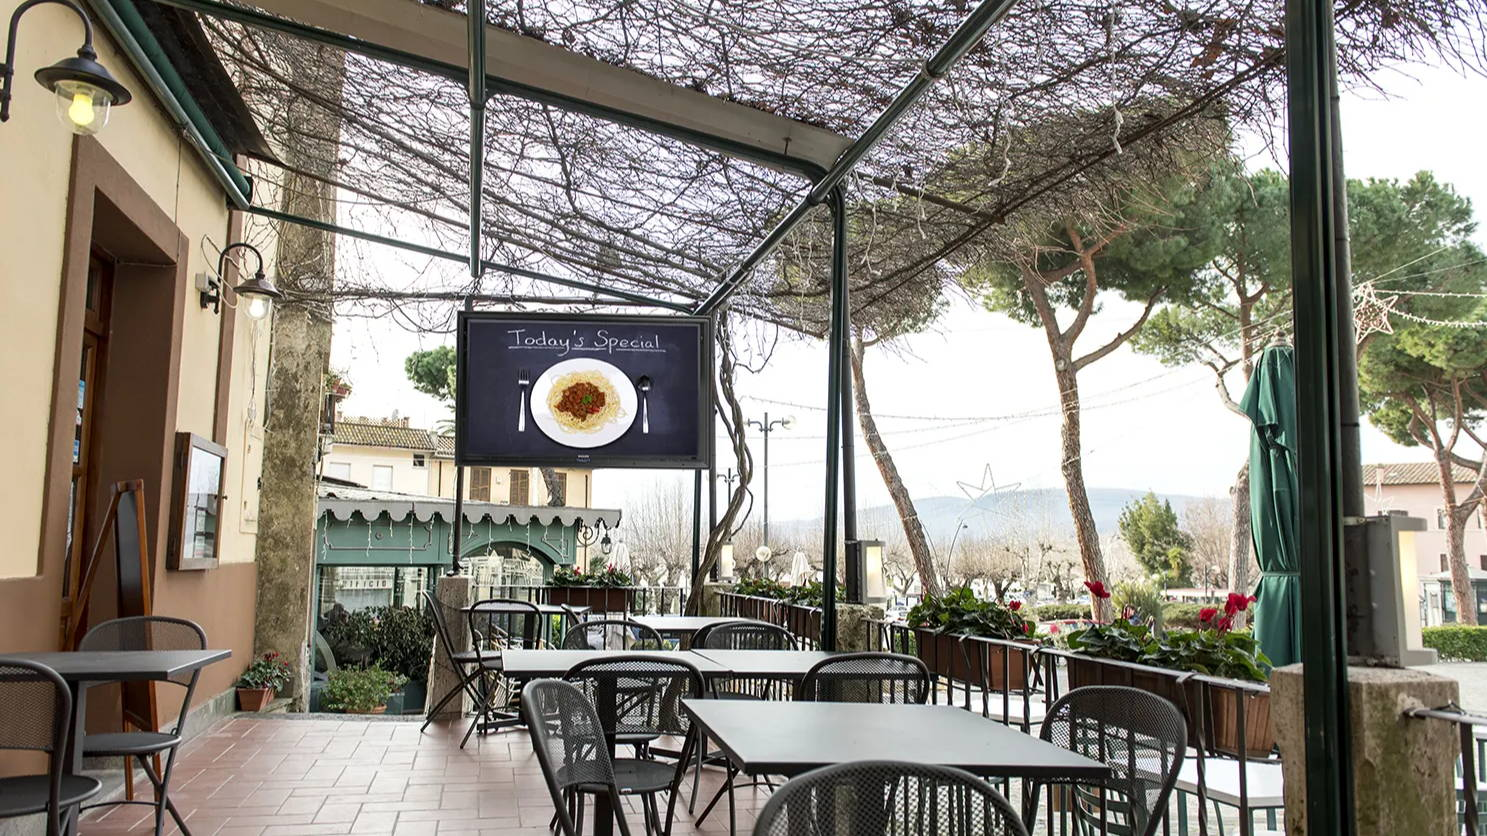 Robust outdoor TV box for TV protection on restaurant patio